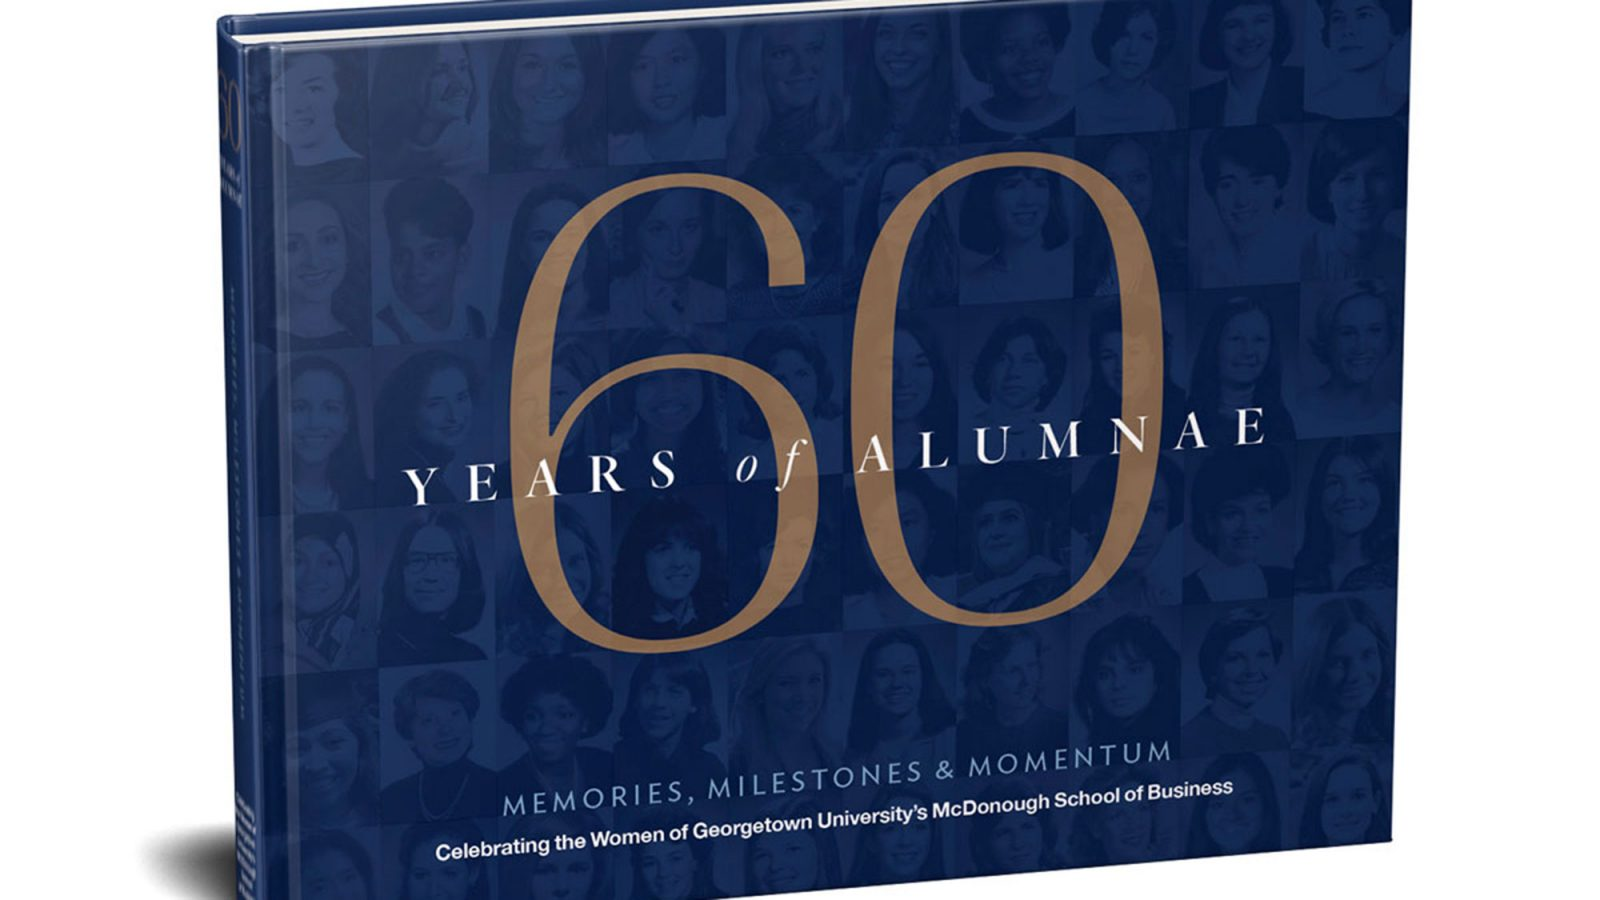 Photo of book titled 60 Years of Alumnae: Memories, Milestones, and Momentum.